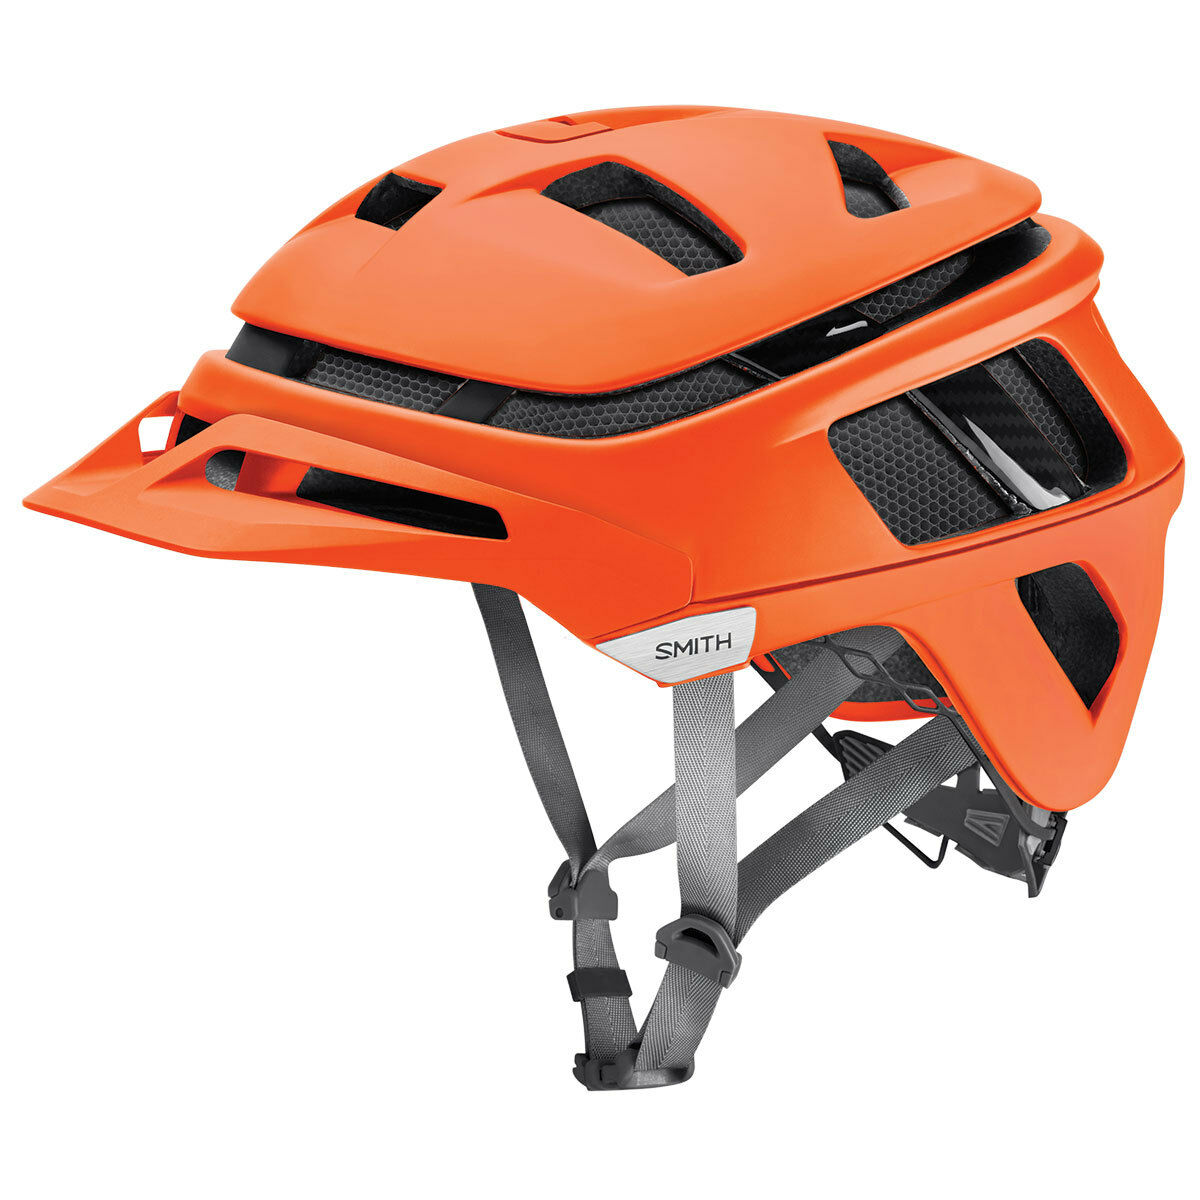 Smith Forefront Mips Cyclisme Vélo Vtt Casque Neon Orange W Koryd S M L Mips